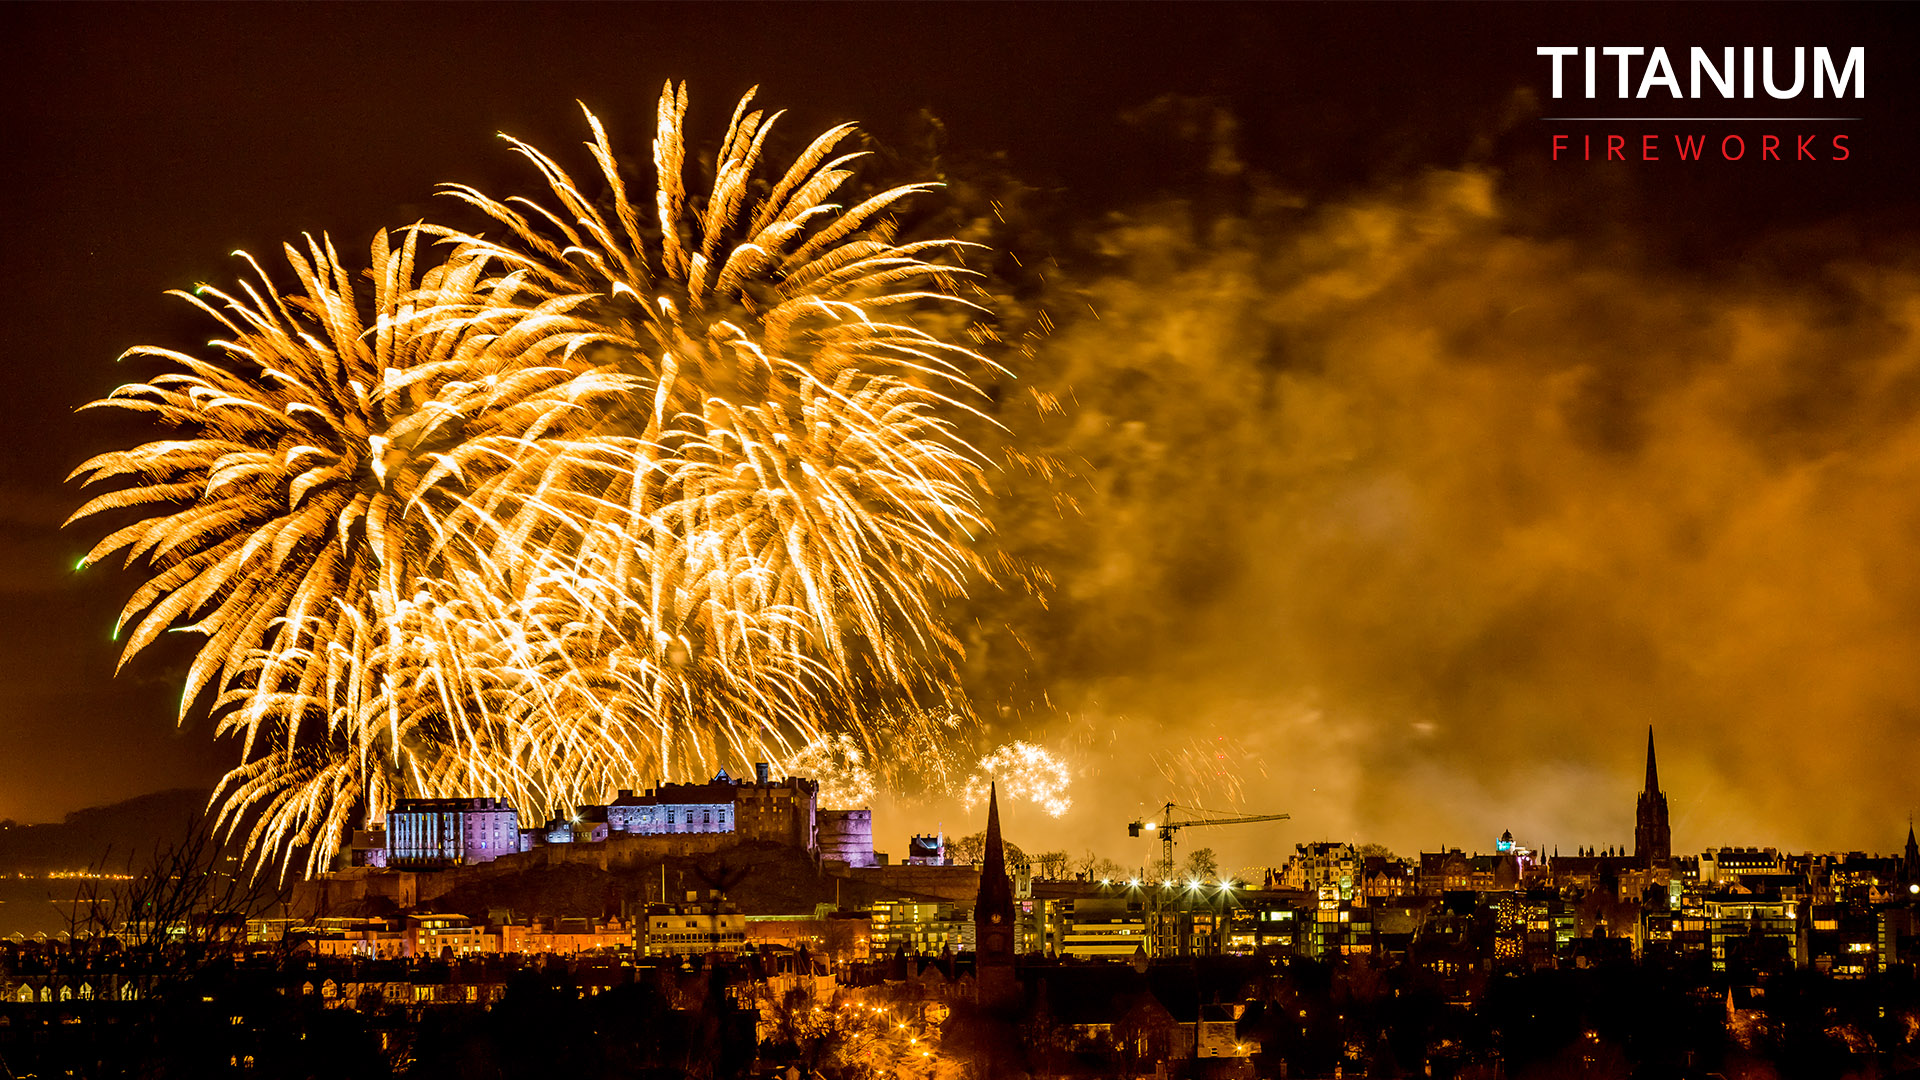 Edinburgh, hogmanay, fireworks, new year's eve, new year, 2014, titanium fireworks, display, professional company